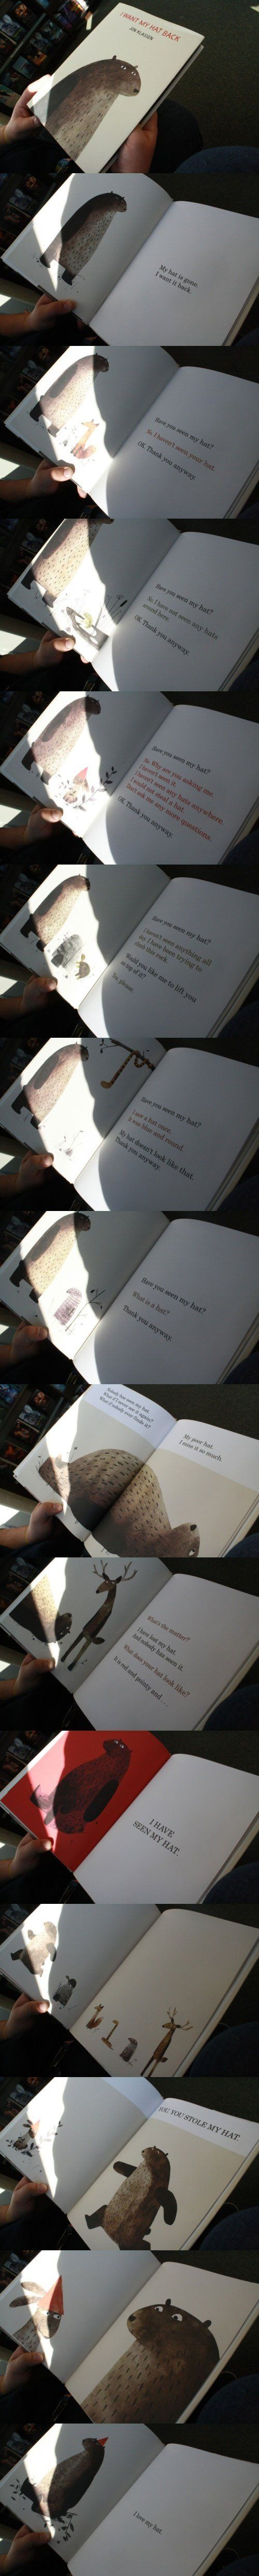 Best story book ever